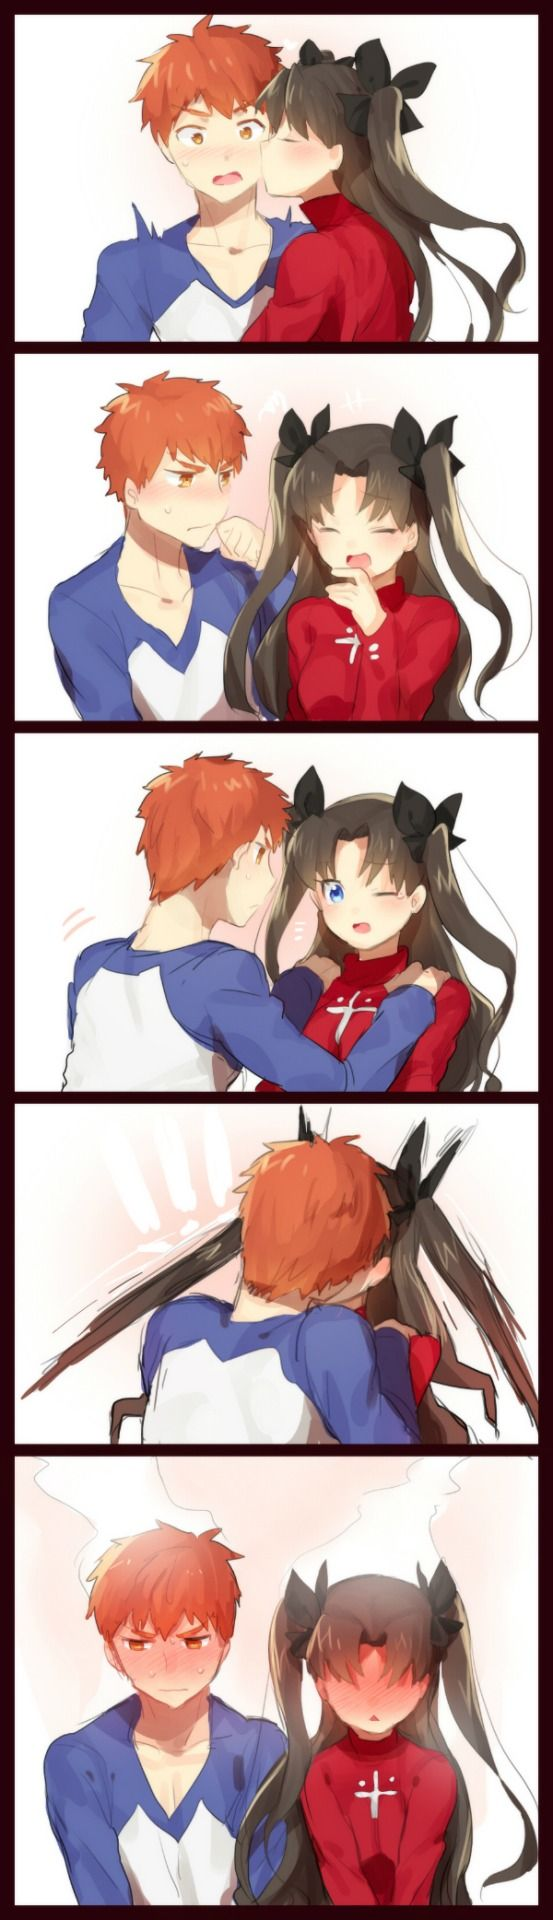 shirou and rin relationship goals